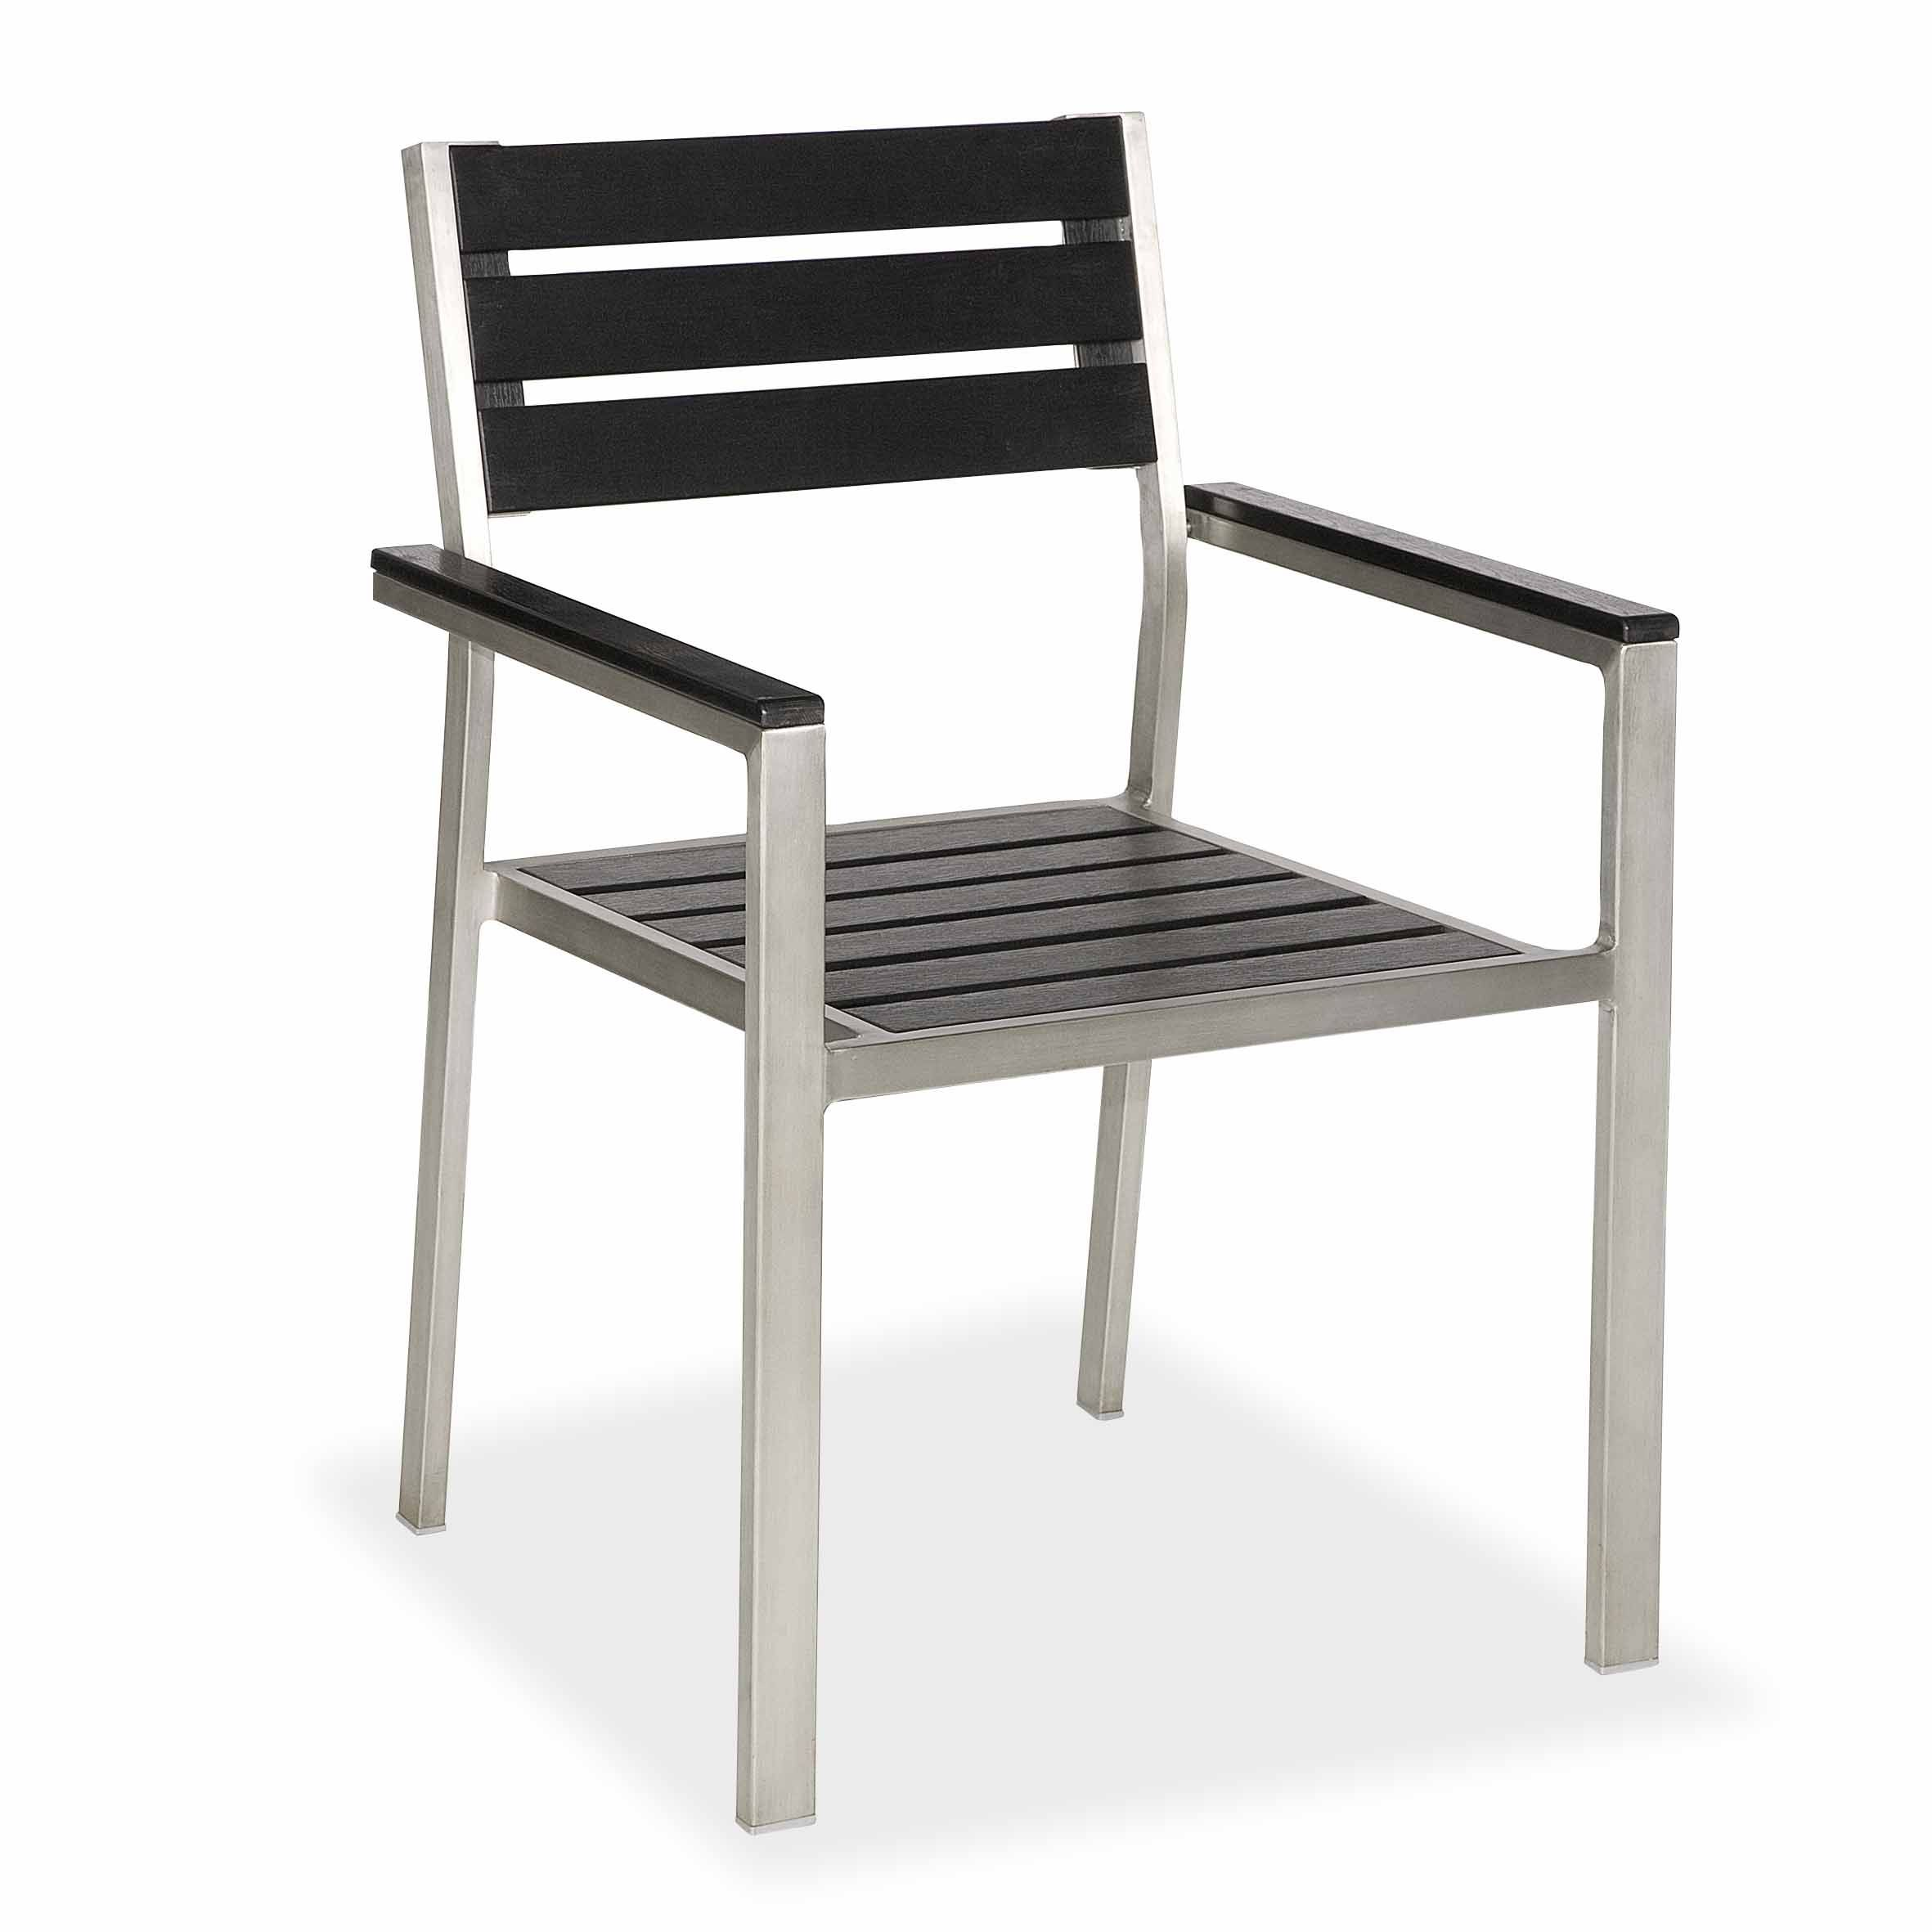 CH C051 stainless steel frame plastic wood top outdoor chair